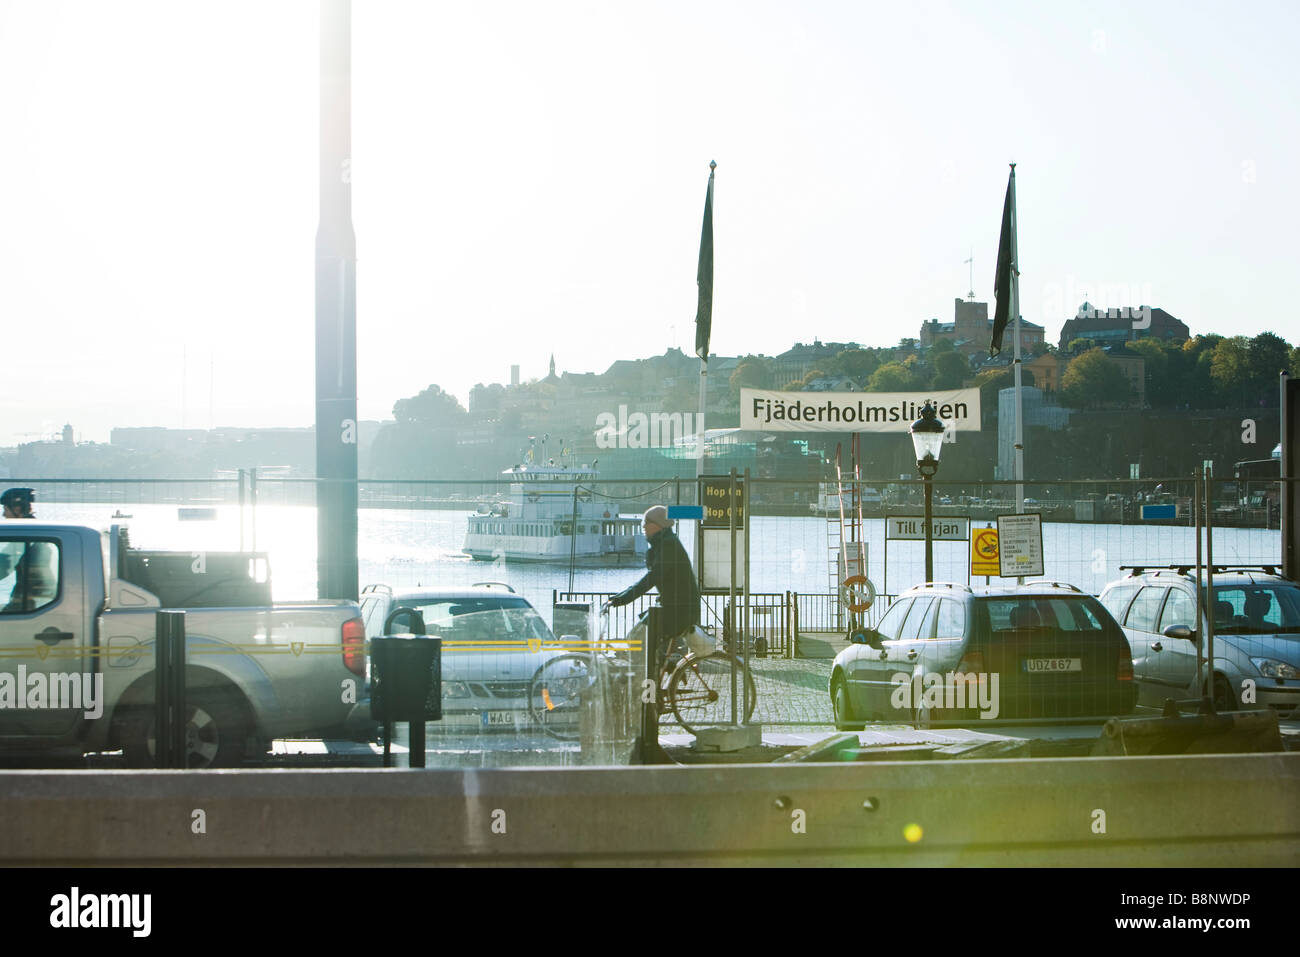 Sweden, Stockholm, busy street with canal and ferry in background - Stock Image